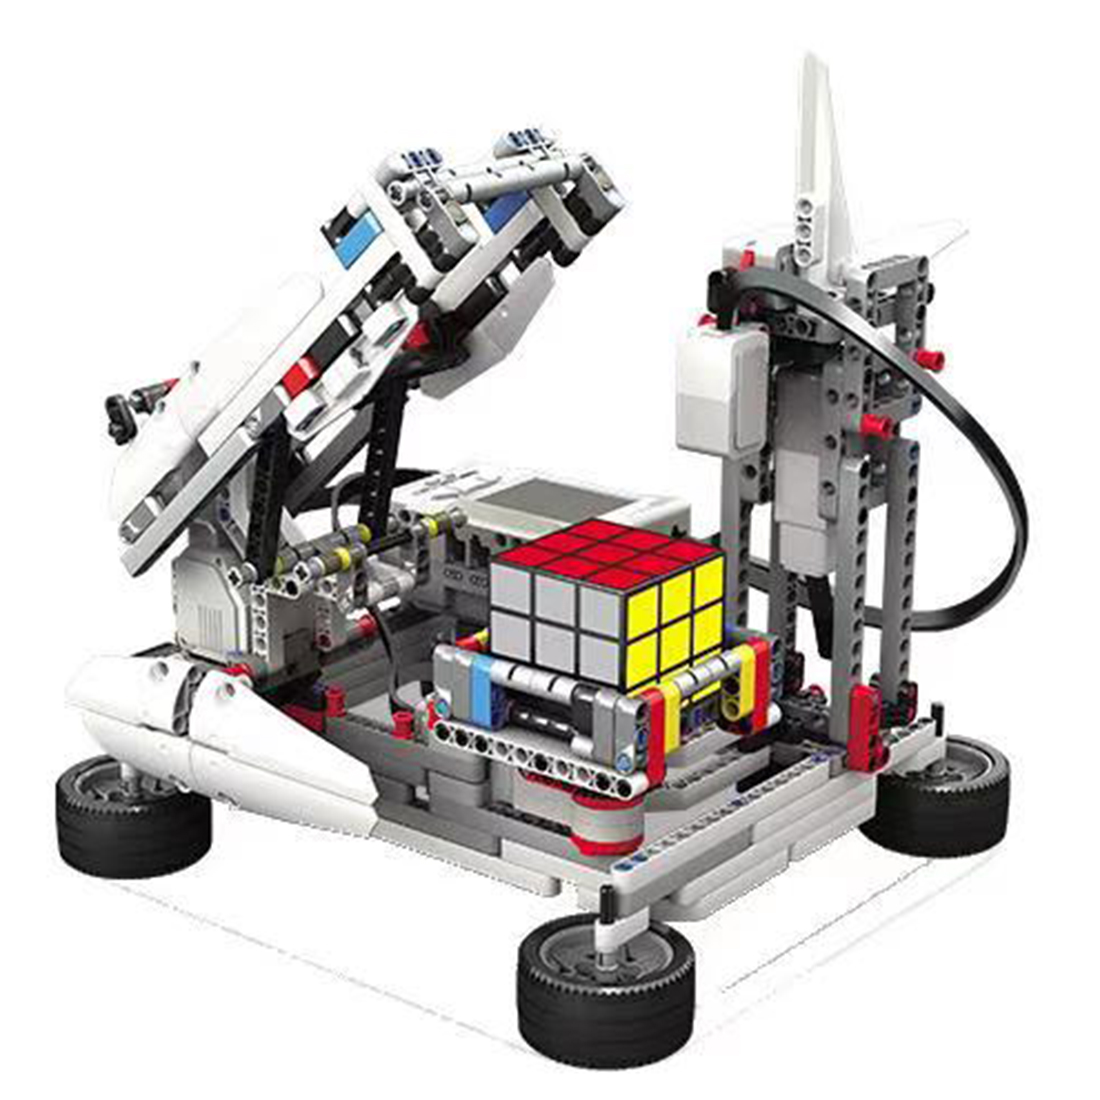 Programmable Building Block Assembly Robot Kit DIY Multifunctional Educational Learning Kit